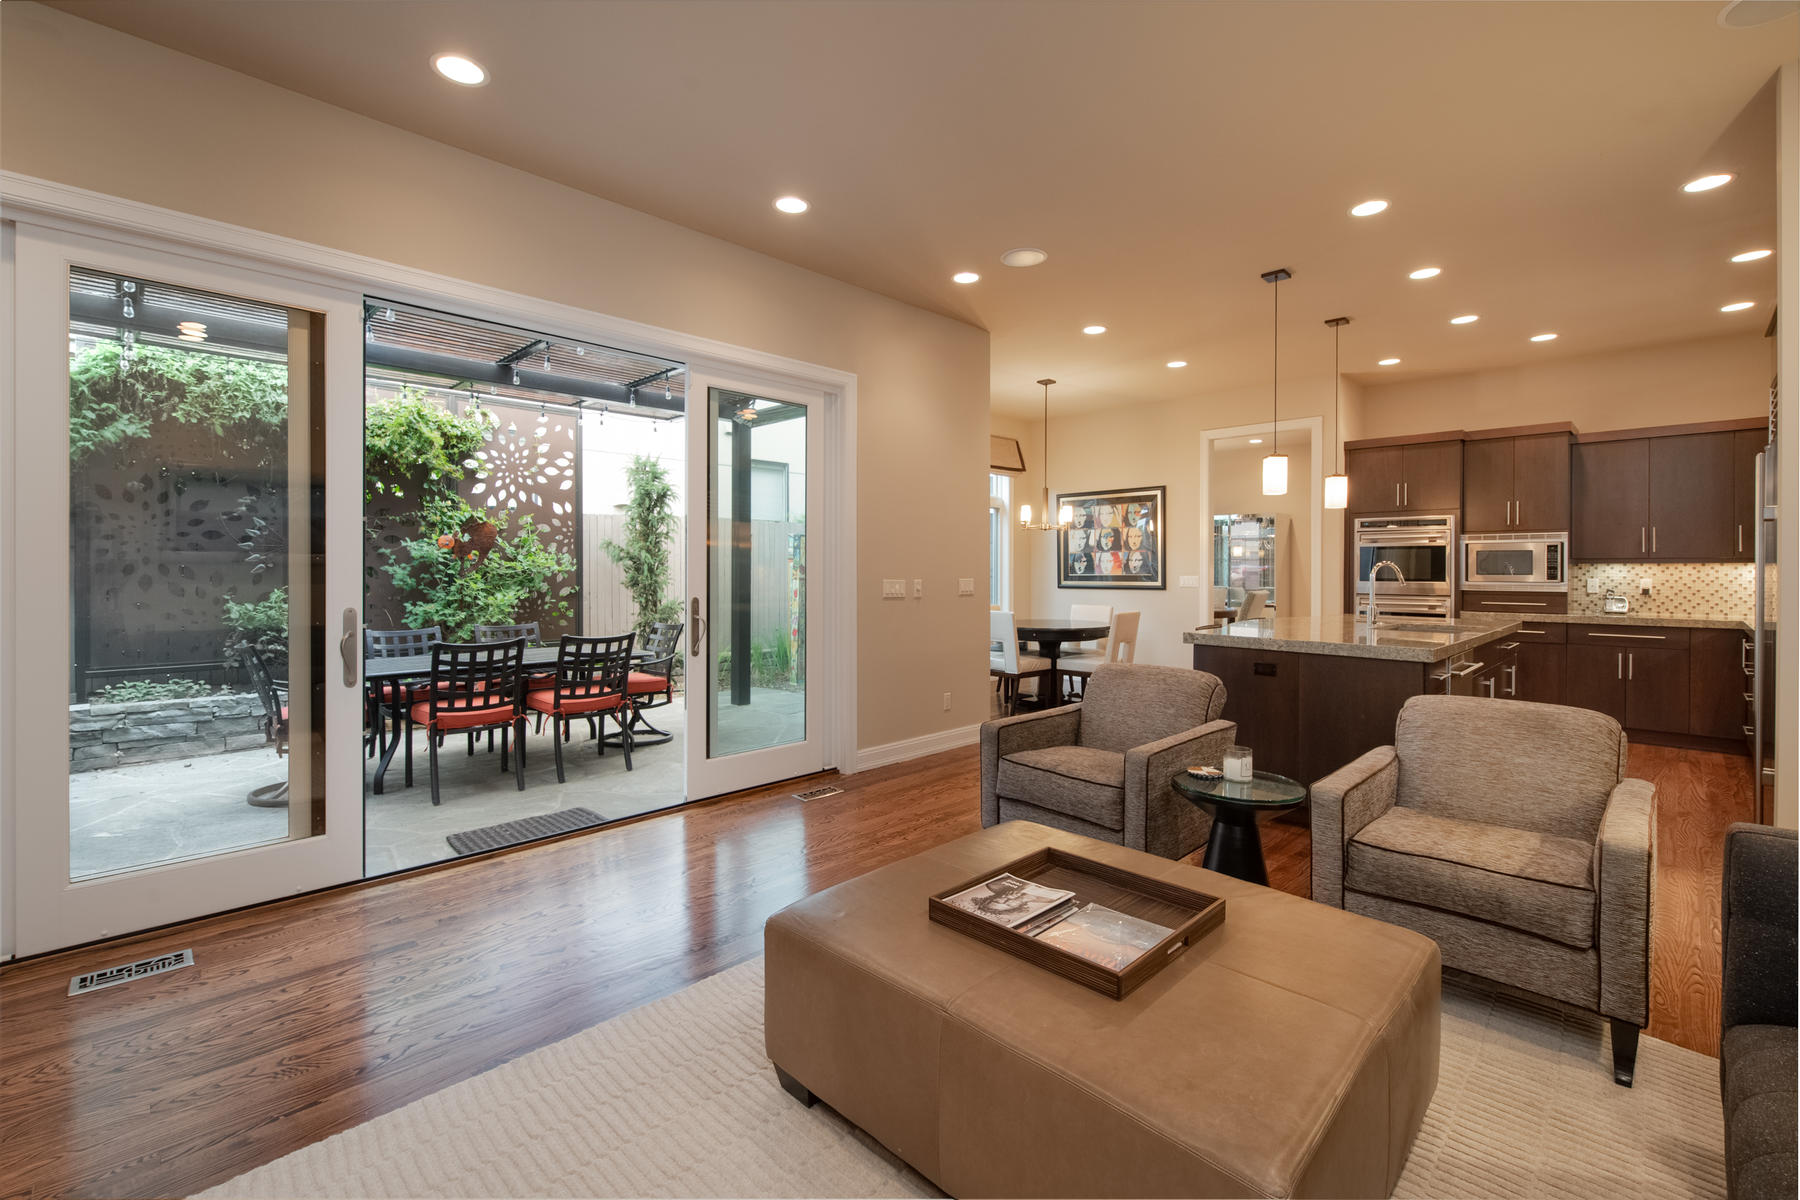 Property for Active at This Townhome Encompasses The Vibrant Lifestyle And Walk-Ability 557 Steele St Denver, Colorado 80206 United States